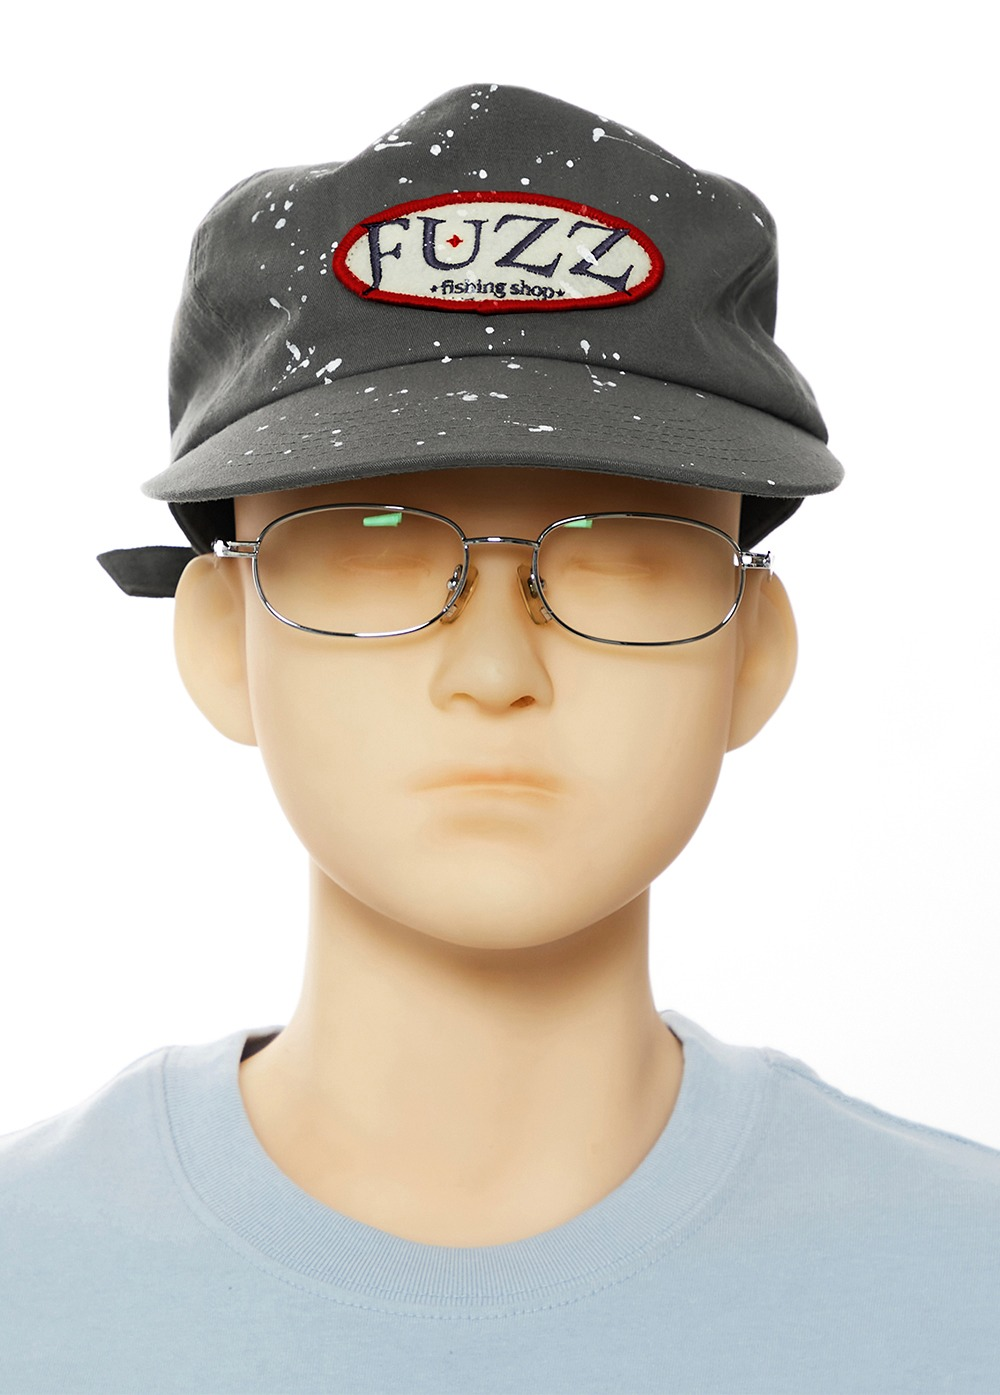 FUZZ FISHING SHOP CAP charcoal